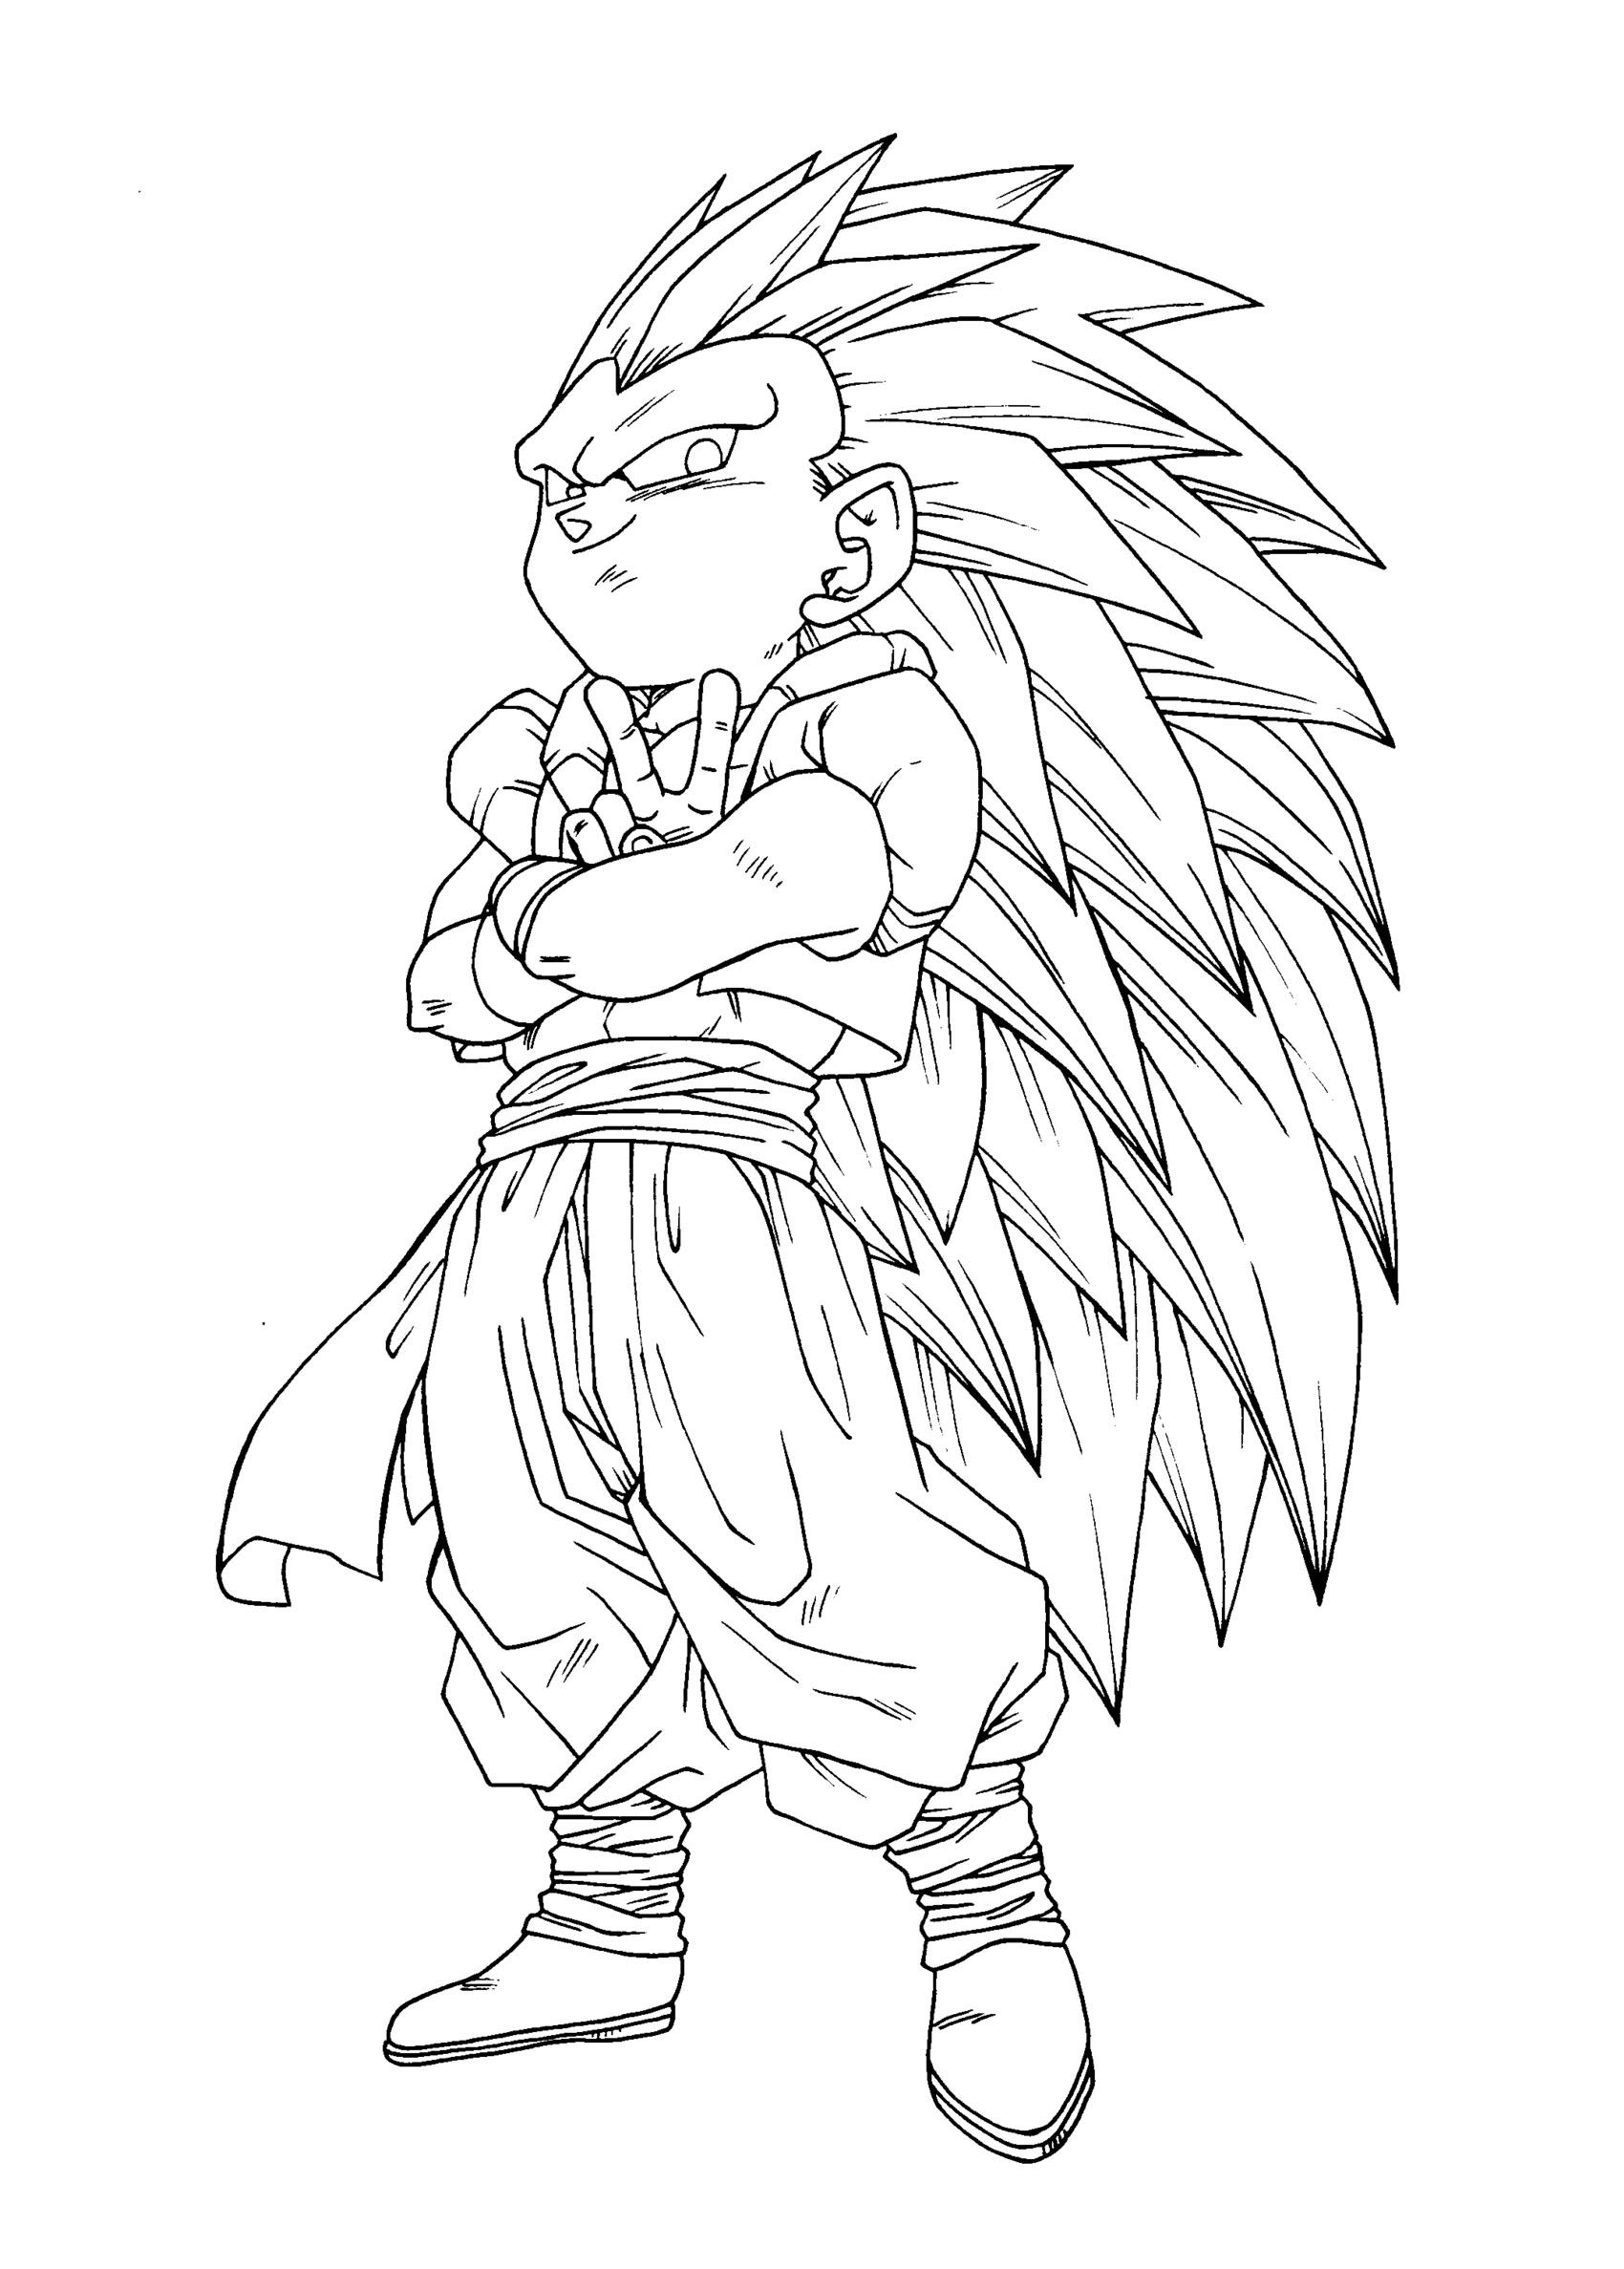 Free Dragon Ball Z Gotenks Coloring Page, Download Free Clip Art ... | 2375x1700